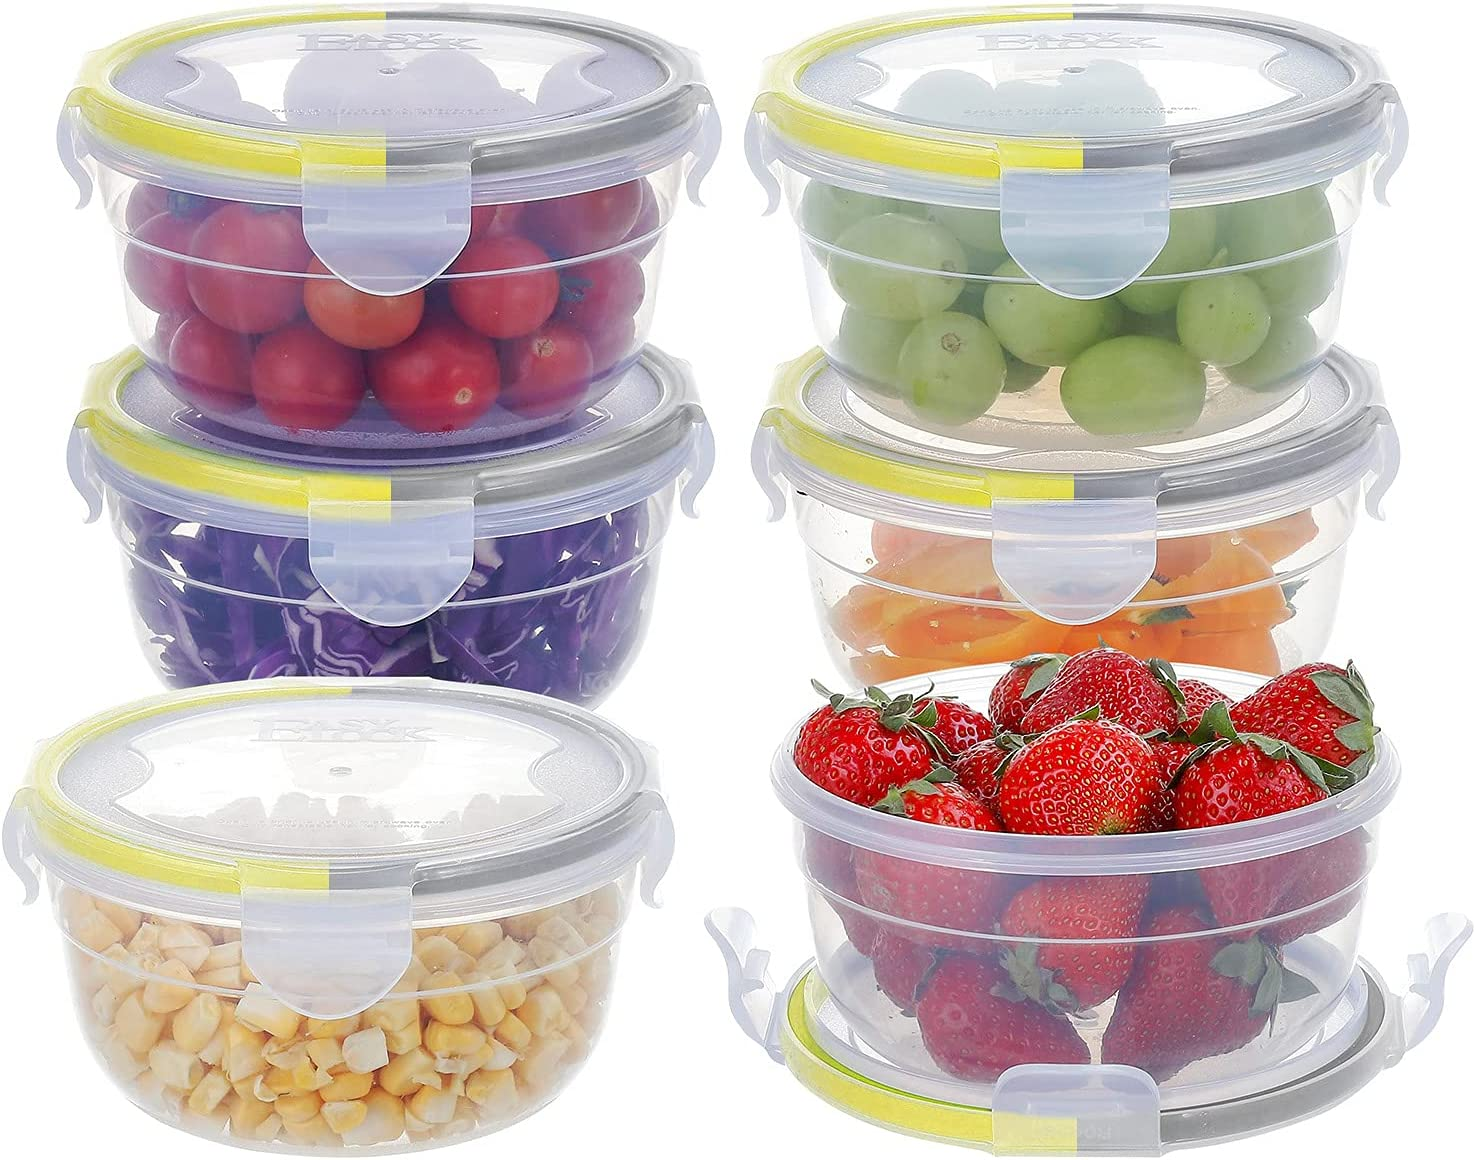 [6 Pack]10.1oz/300ml Plastic Small Food Storage Container with Lid, Airtight Round Storage Bowls,Leak-proof Sauce Containers,Microwave, Freezer and Dishwasher Safe